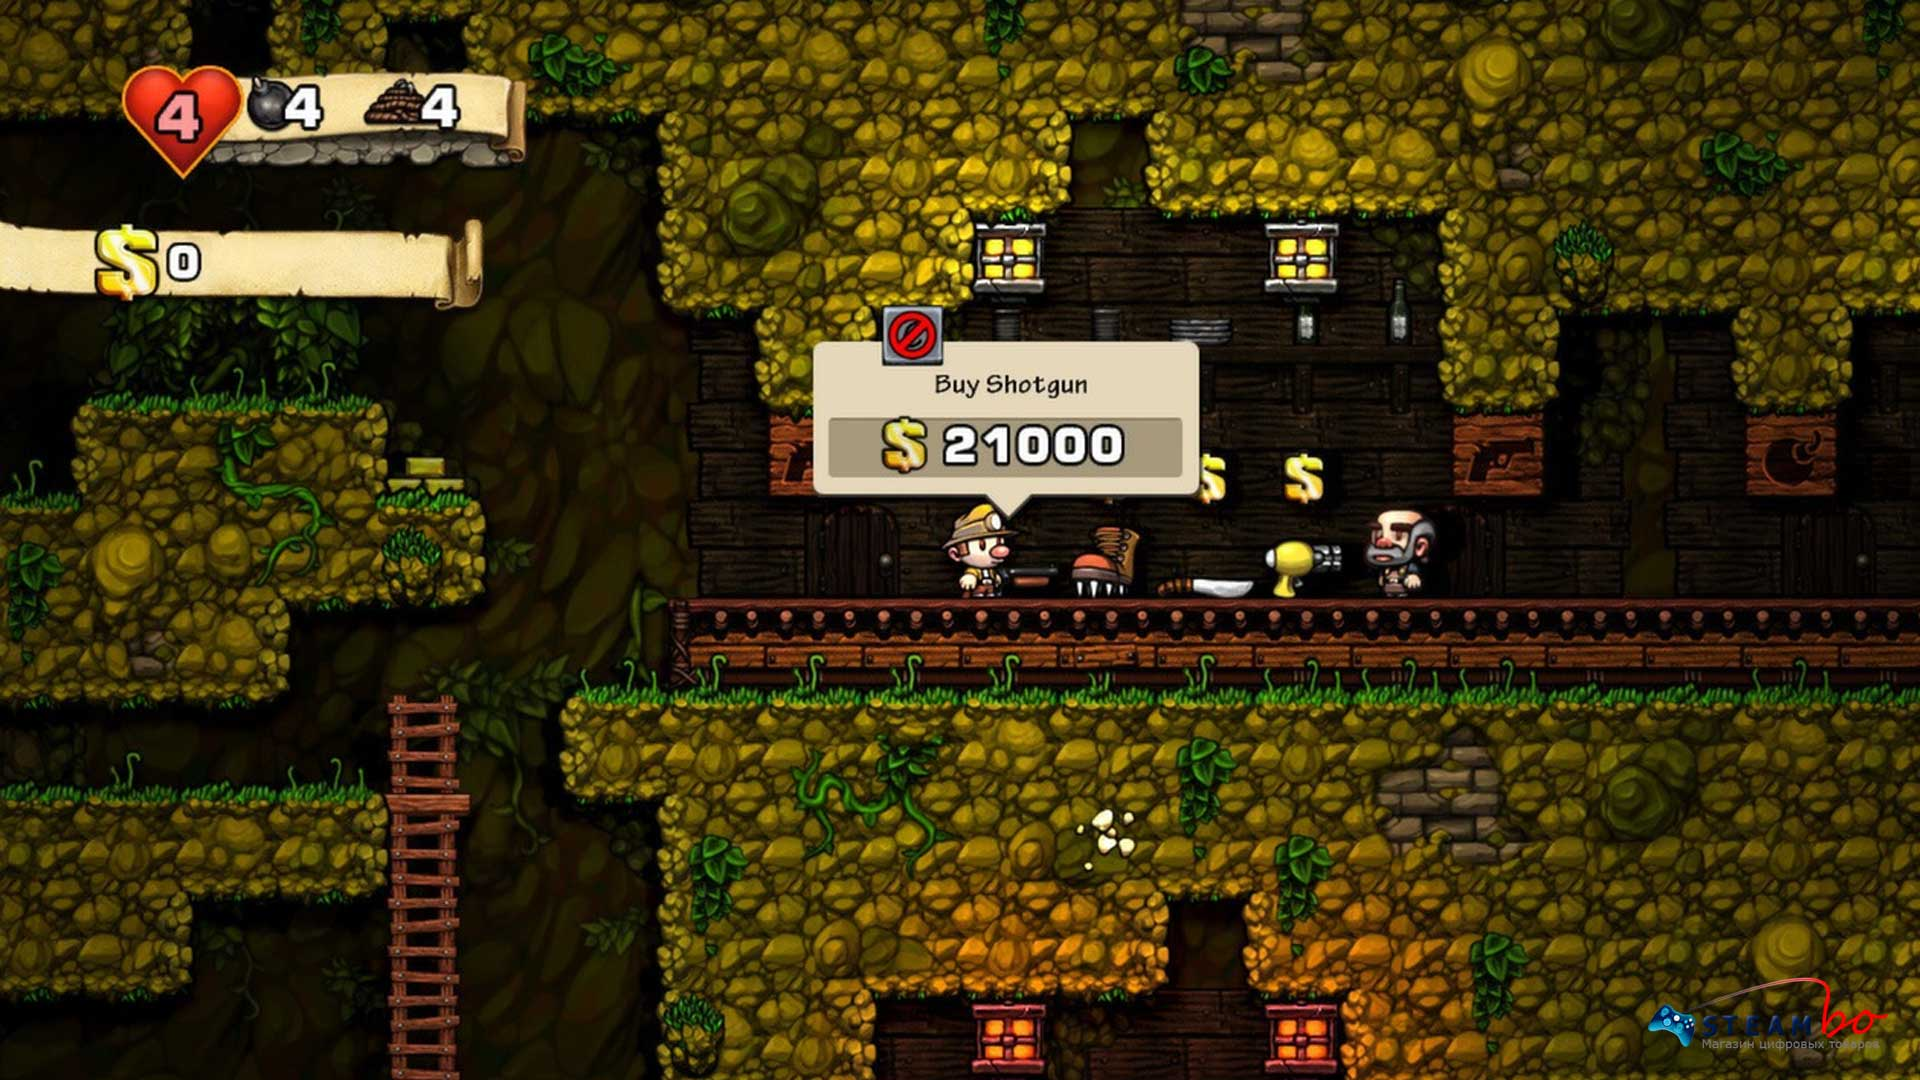 Spelunky Region Free (Steam Gift/Key)